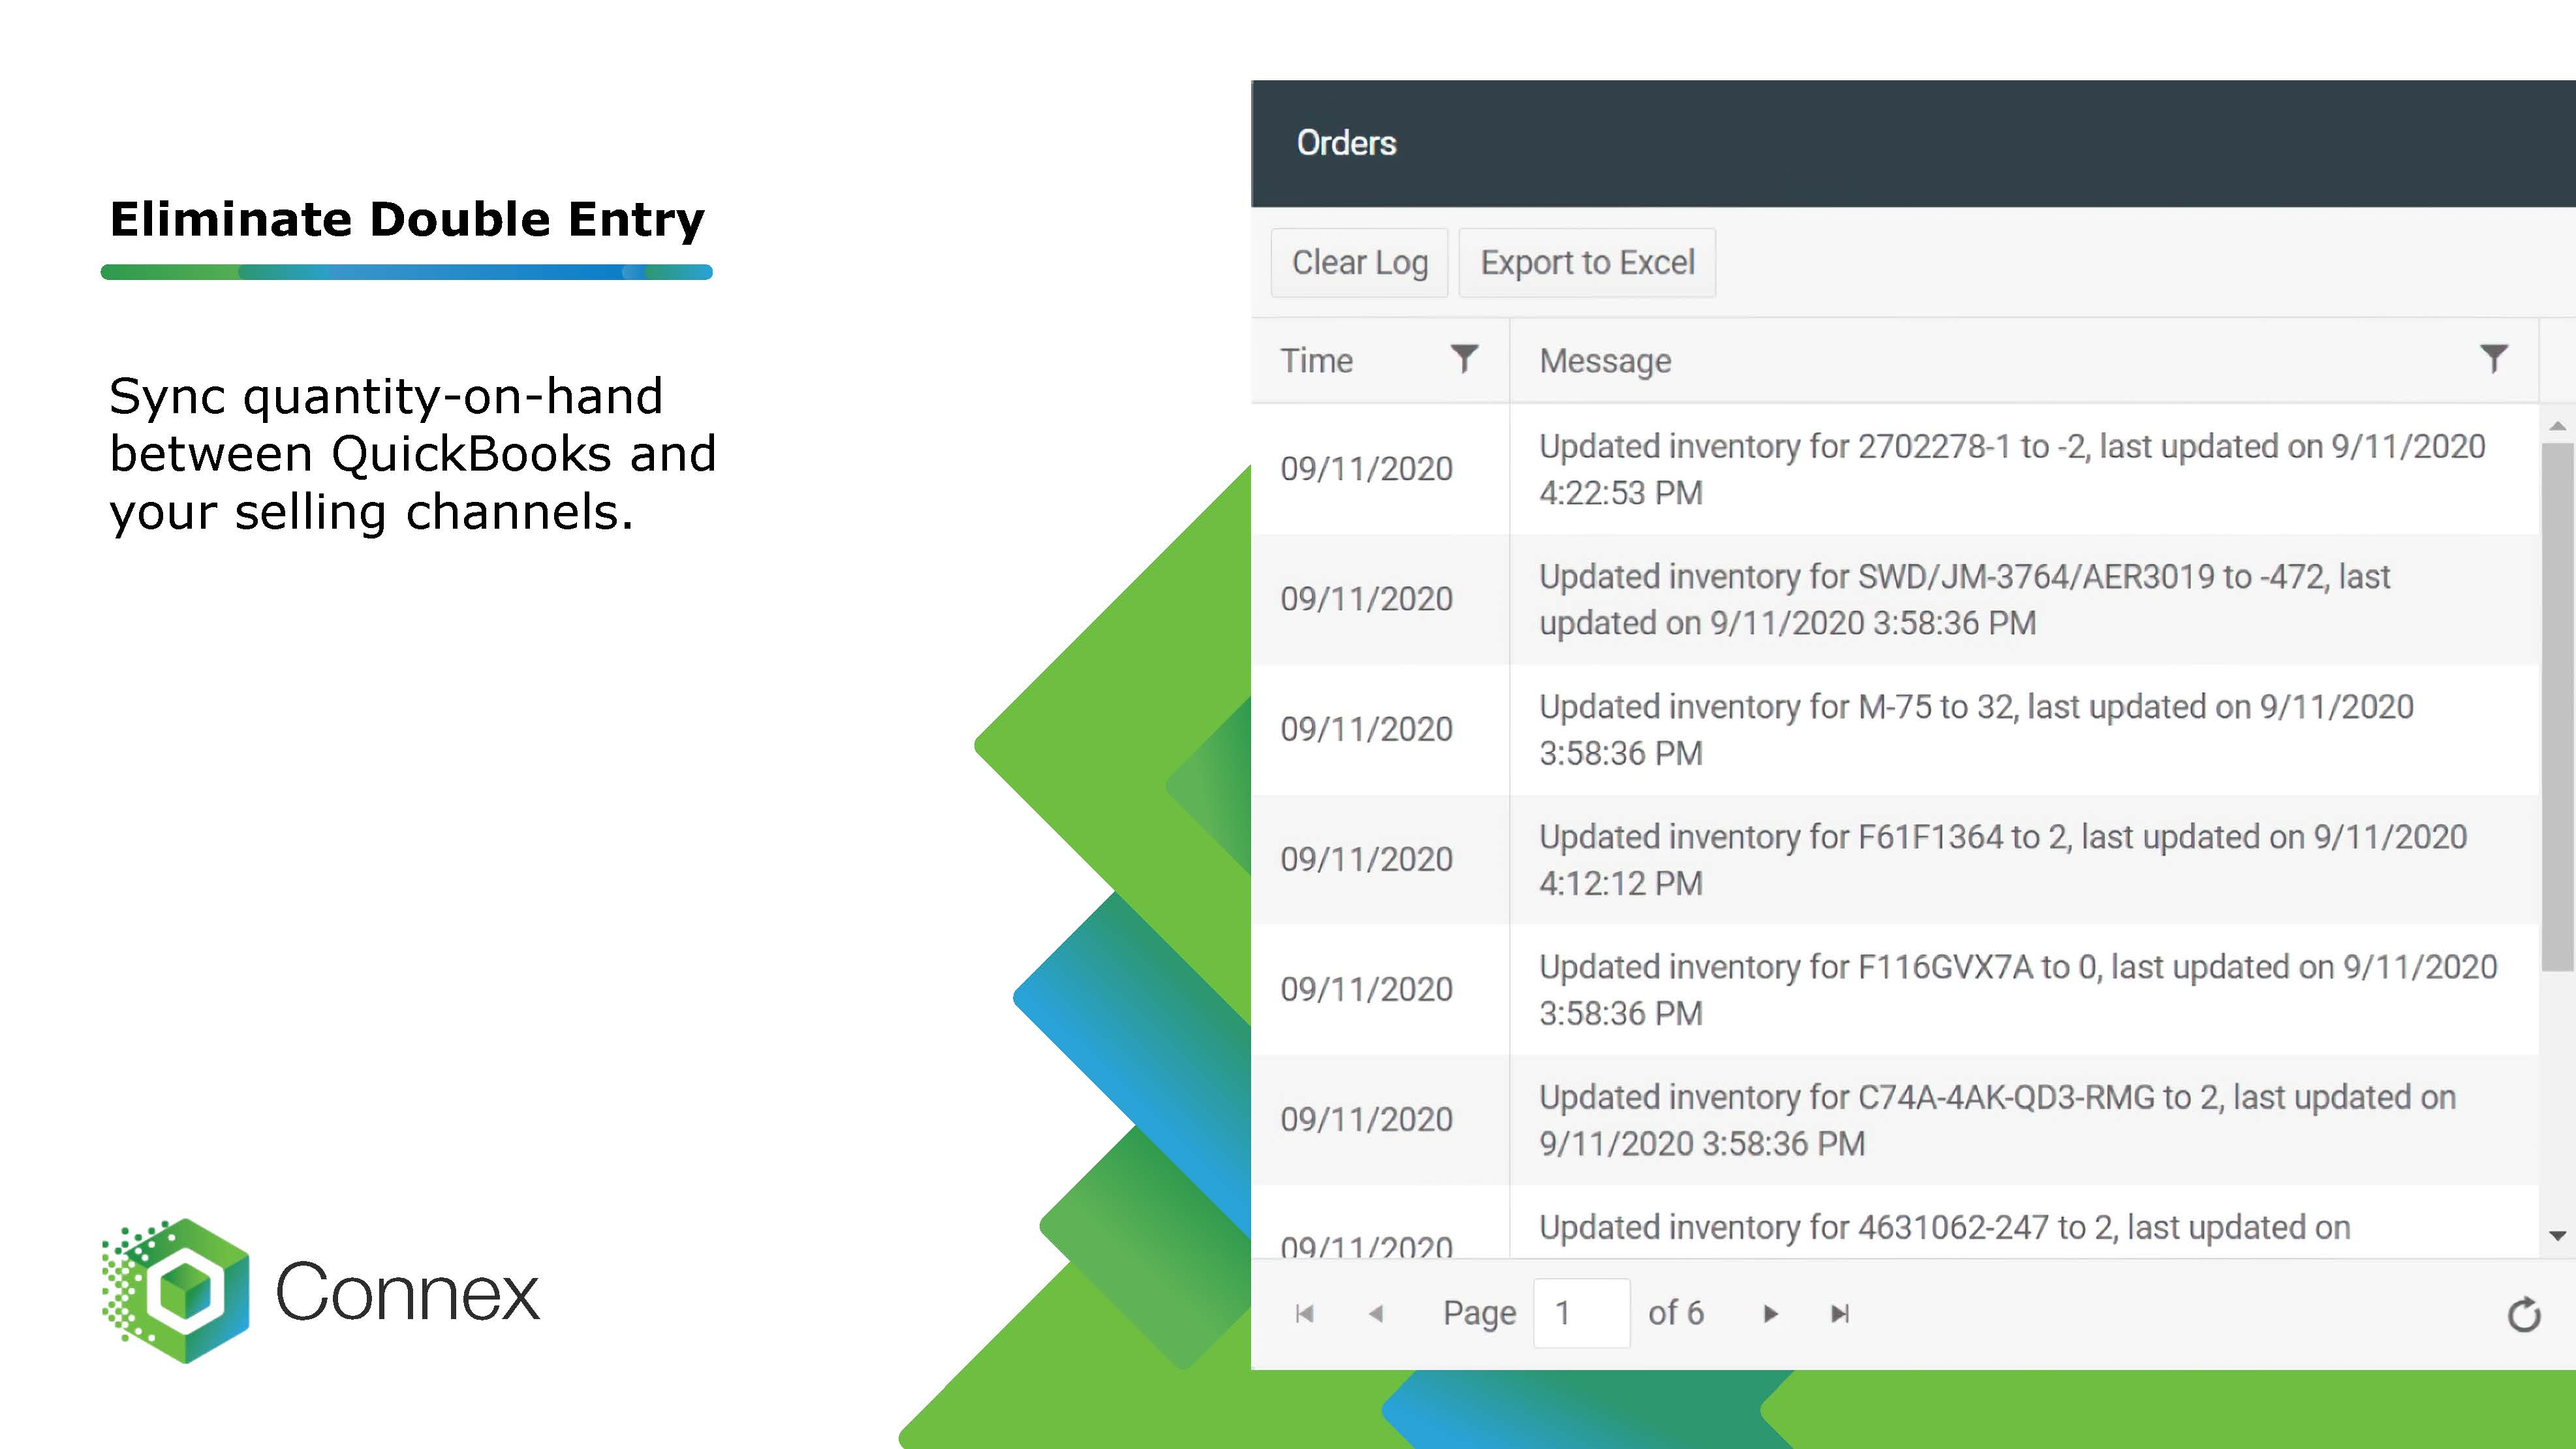 Eliminate double entry of data into QuickBooks and your online stores